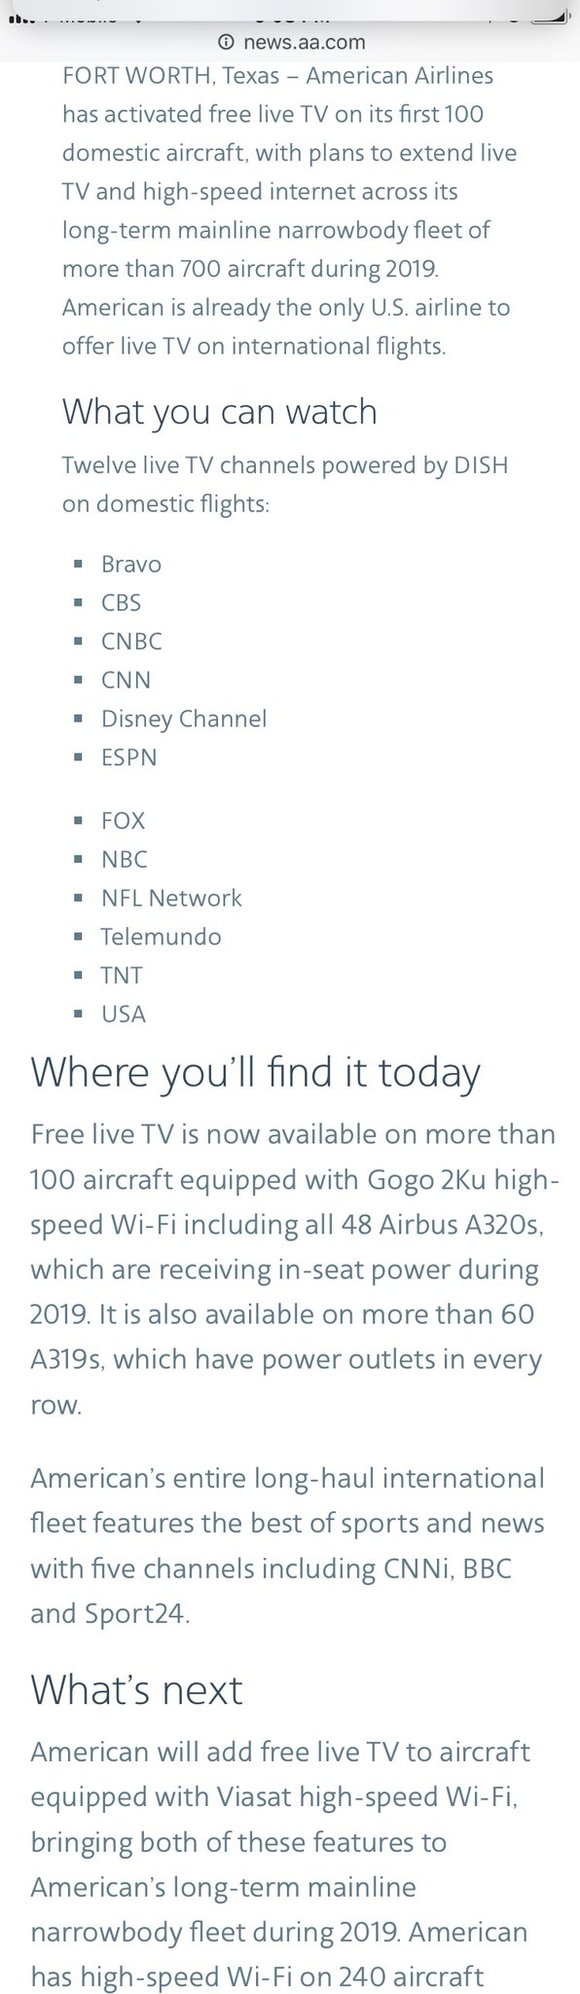 Live TV now on domestic aircraft with satellite WiFi - Page